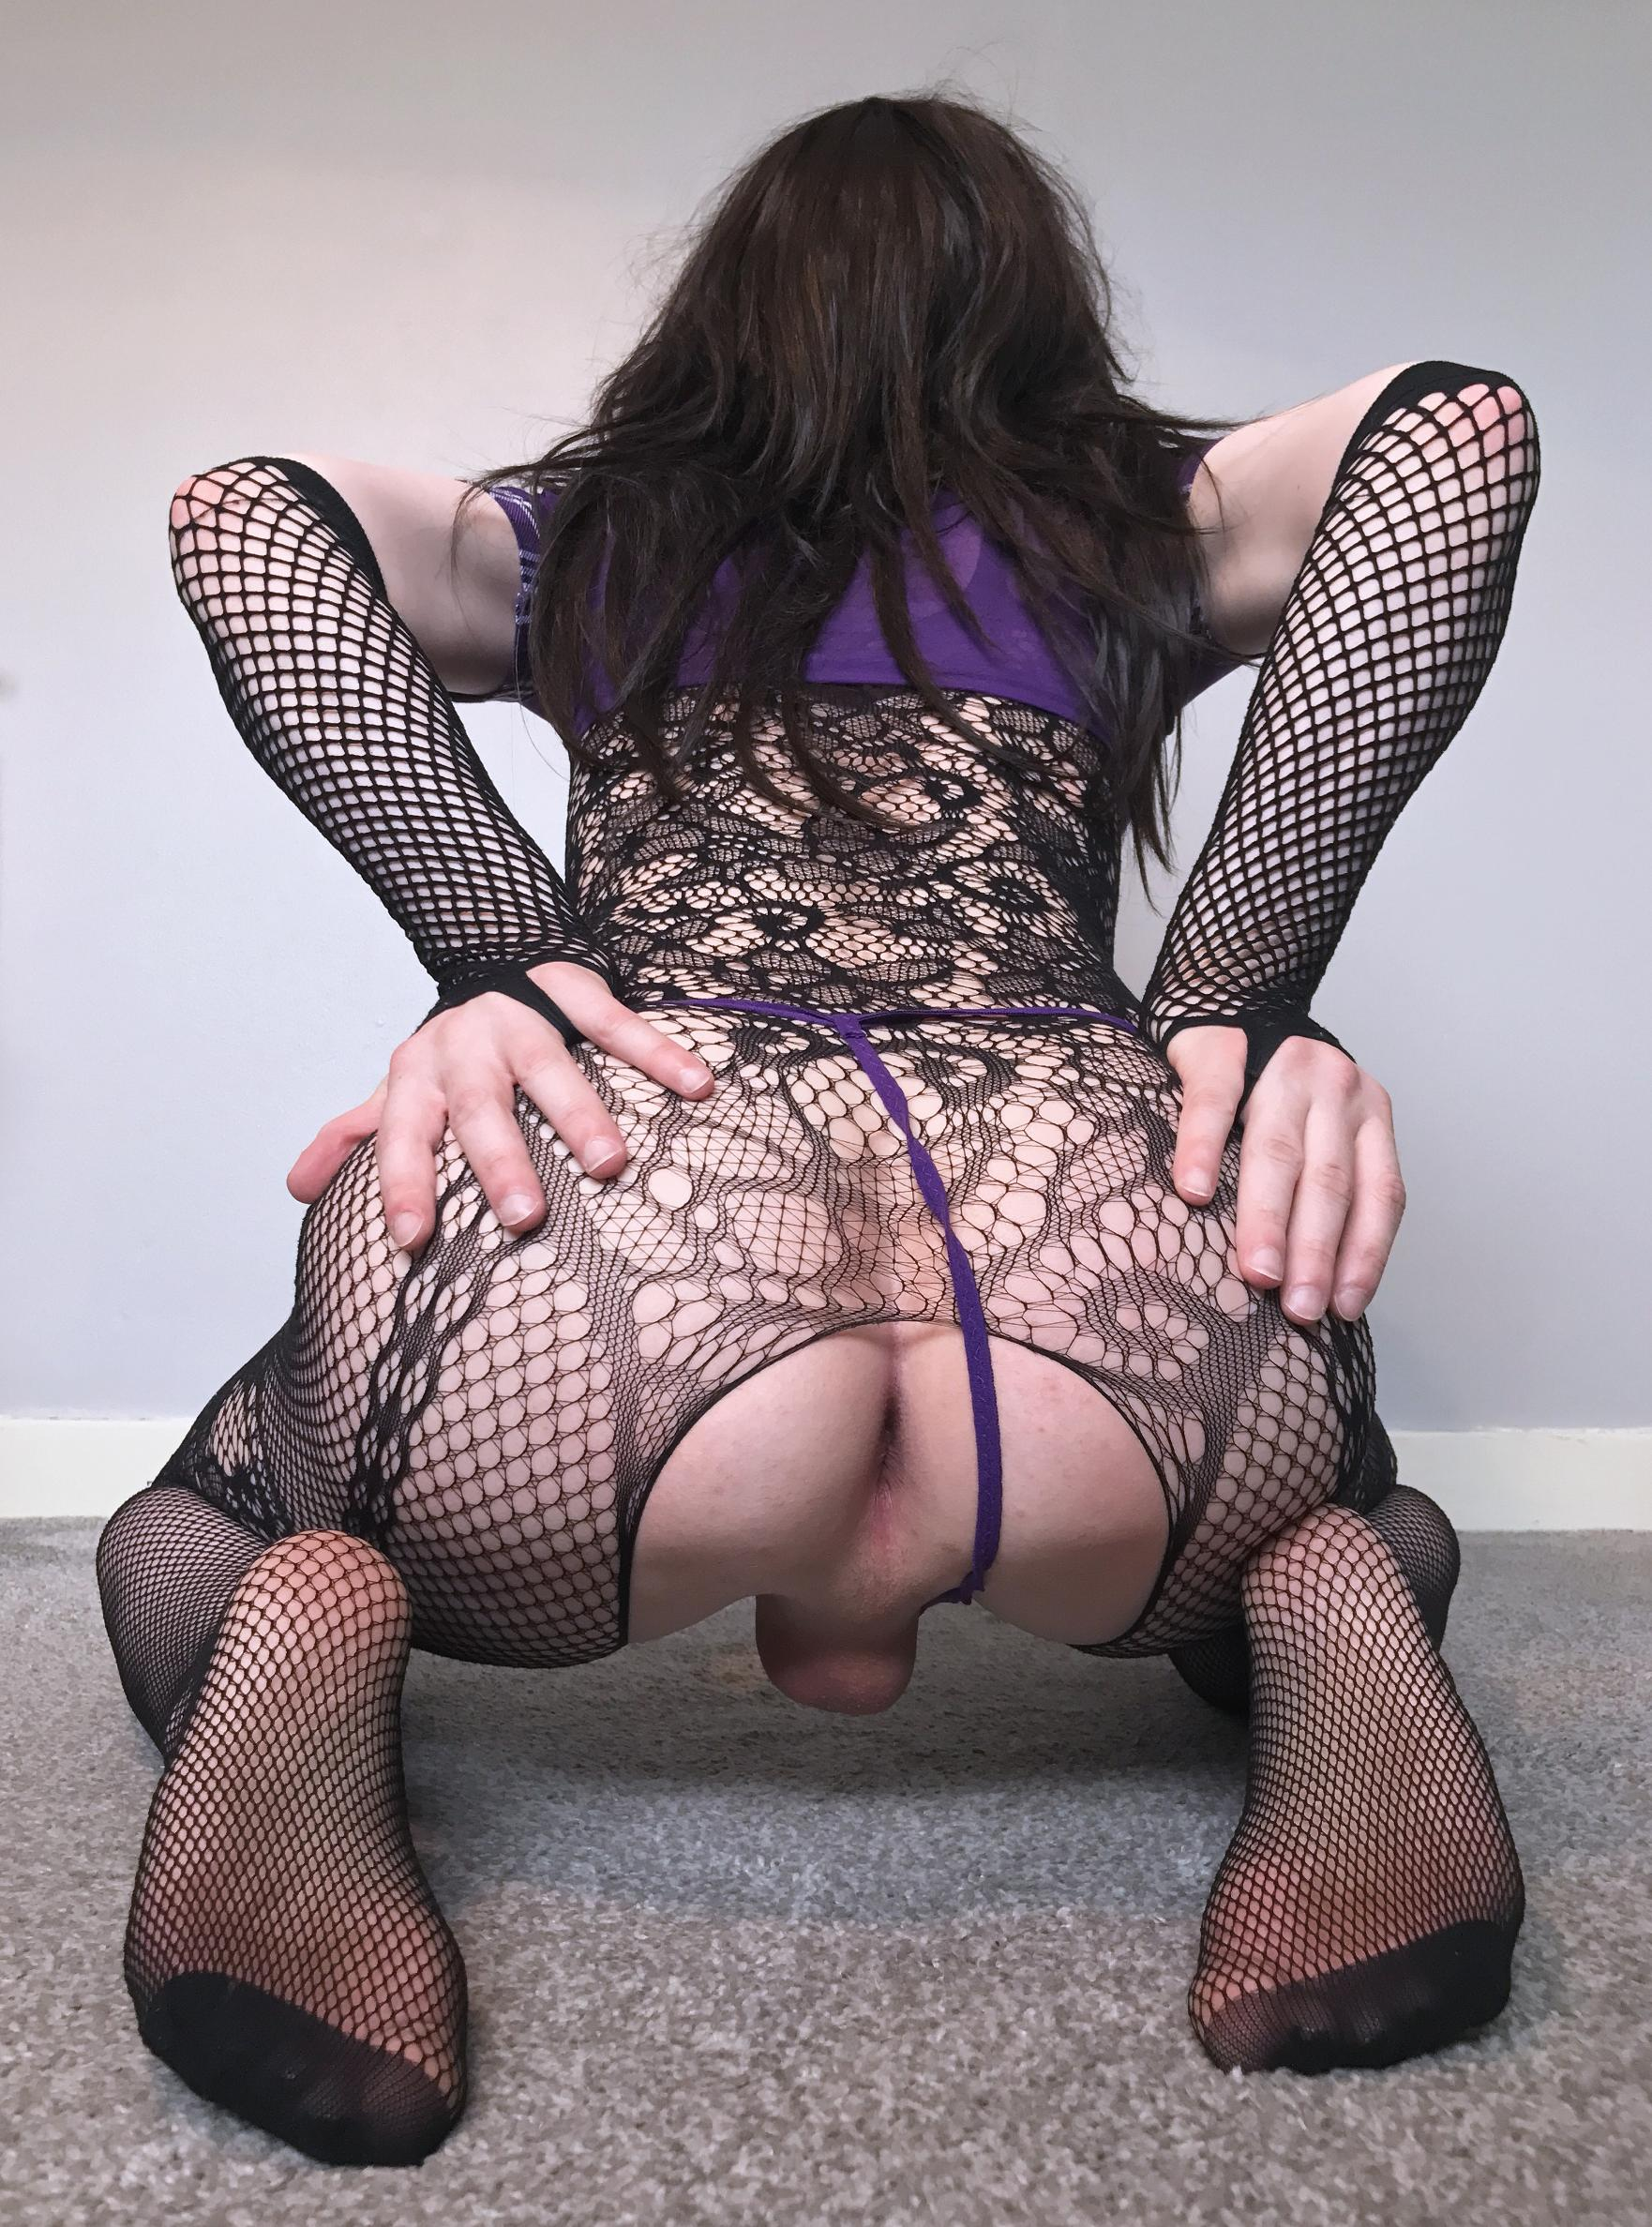 rreal sex homemade mature wife whit son videos porn sex